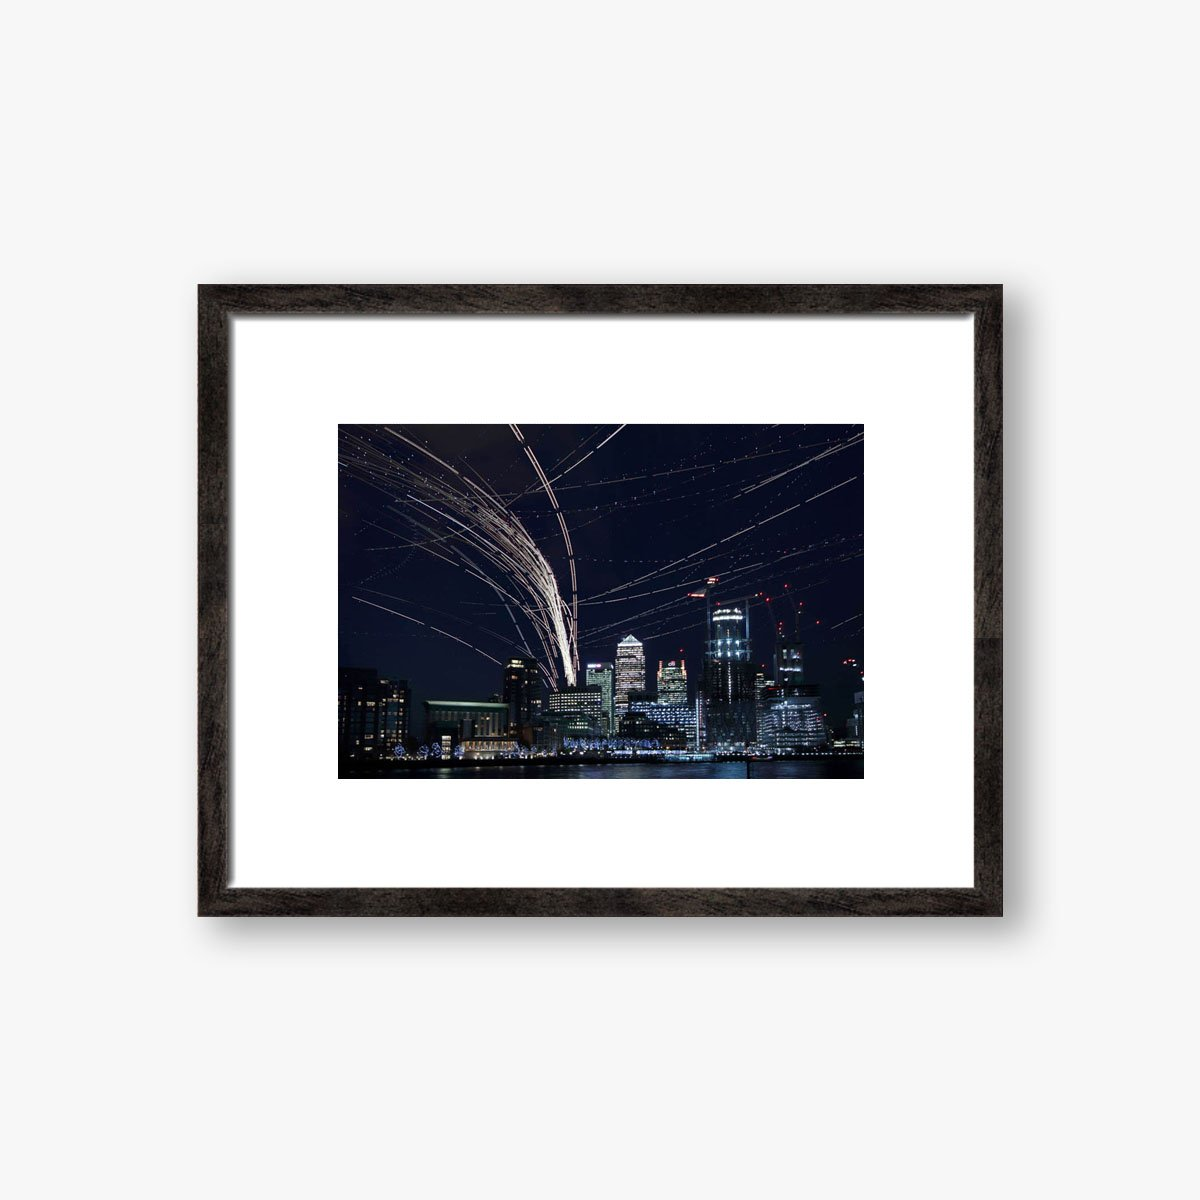 Aircraft Pass Over Canary Wharf by Roger Jackson